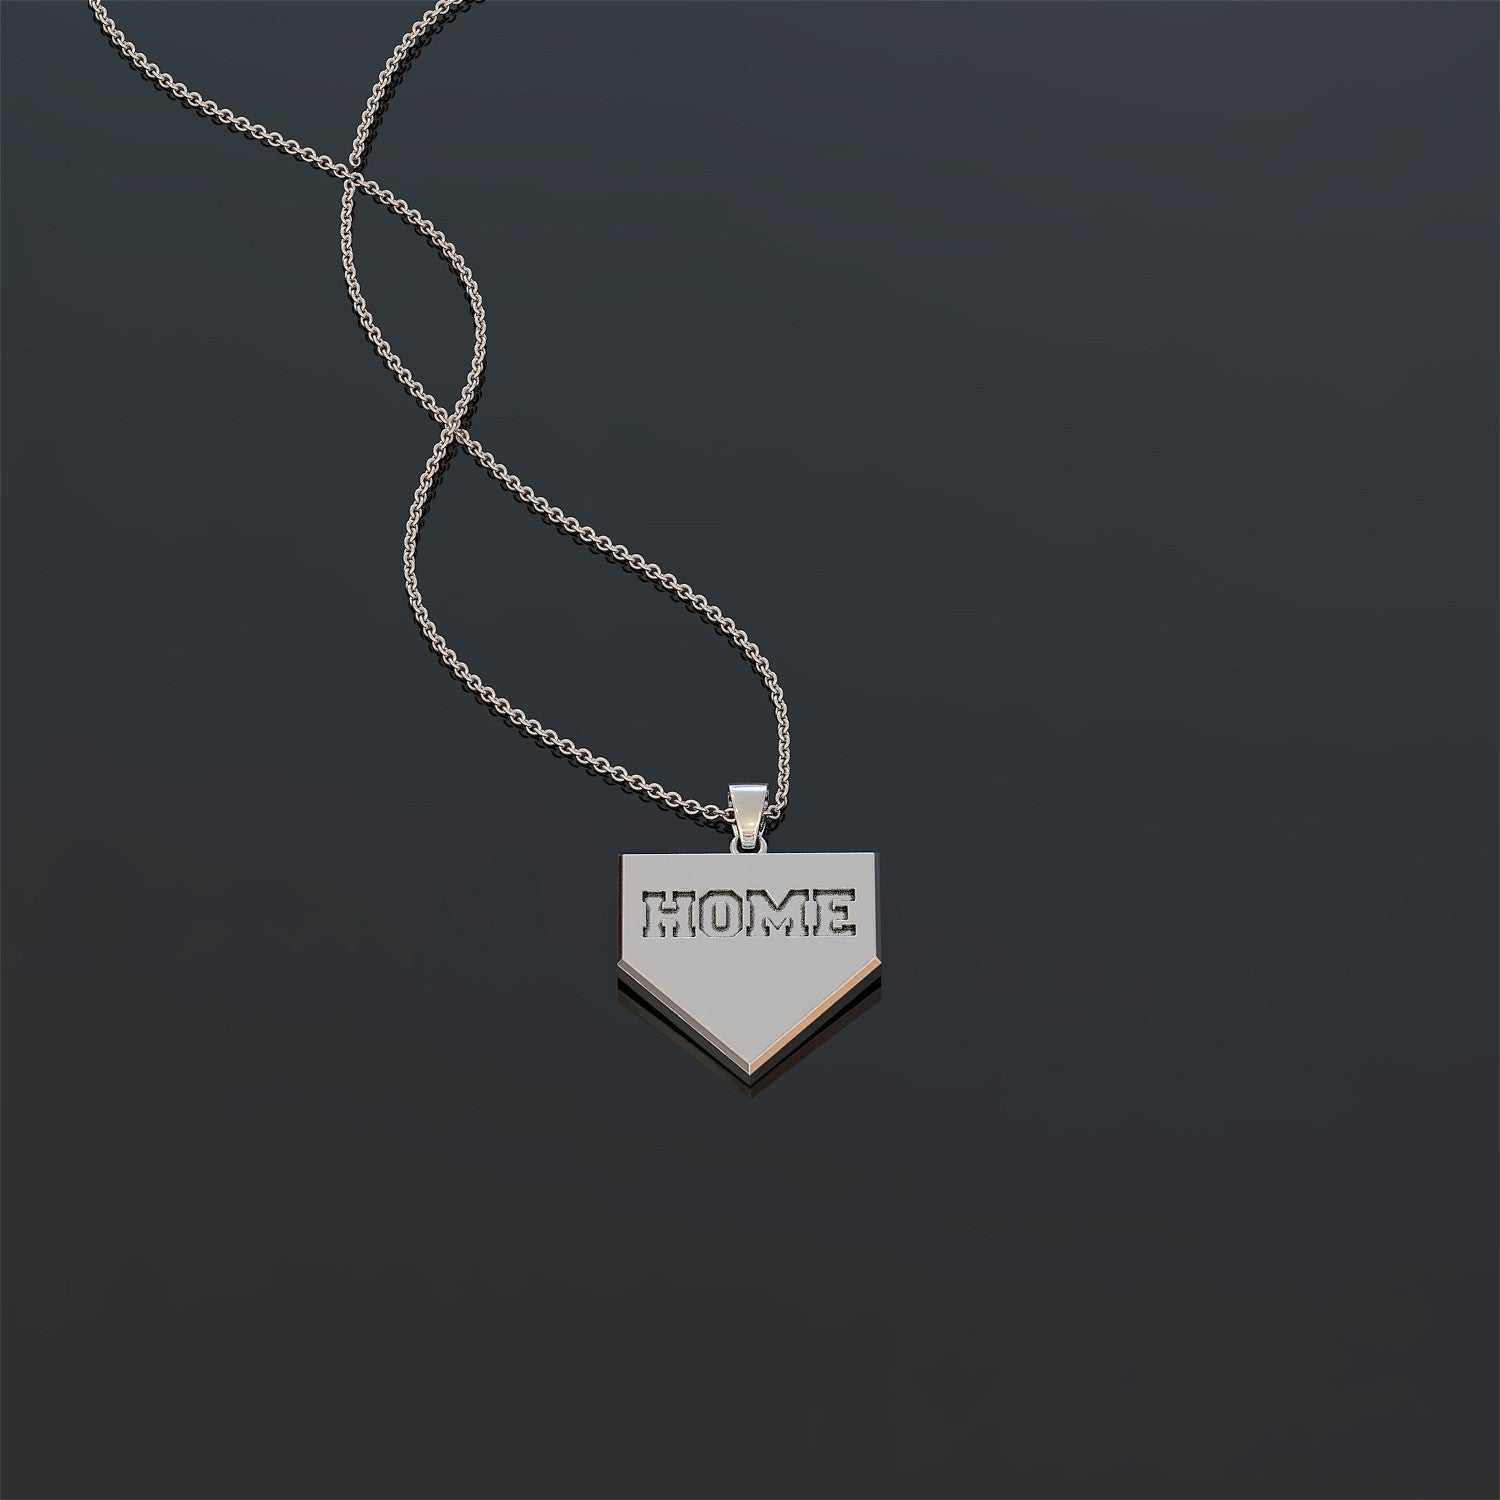 Home Means Nevada Necklace